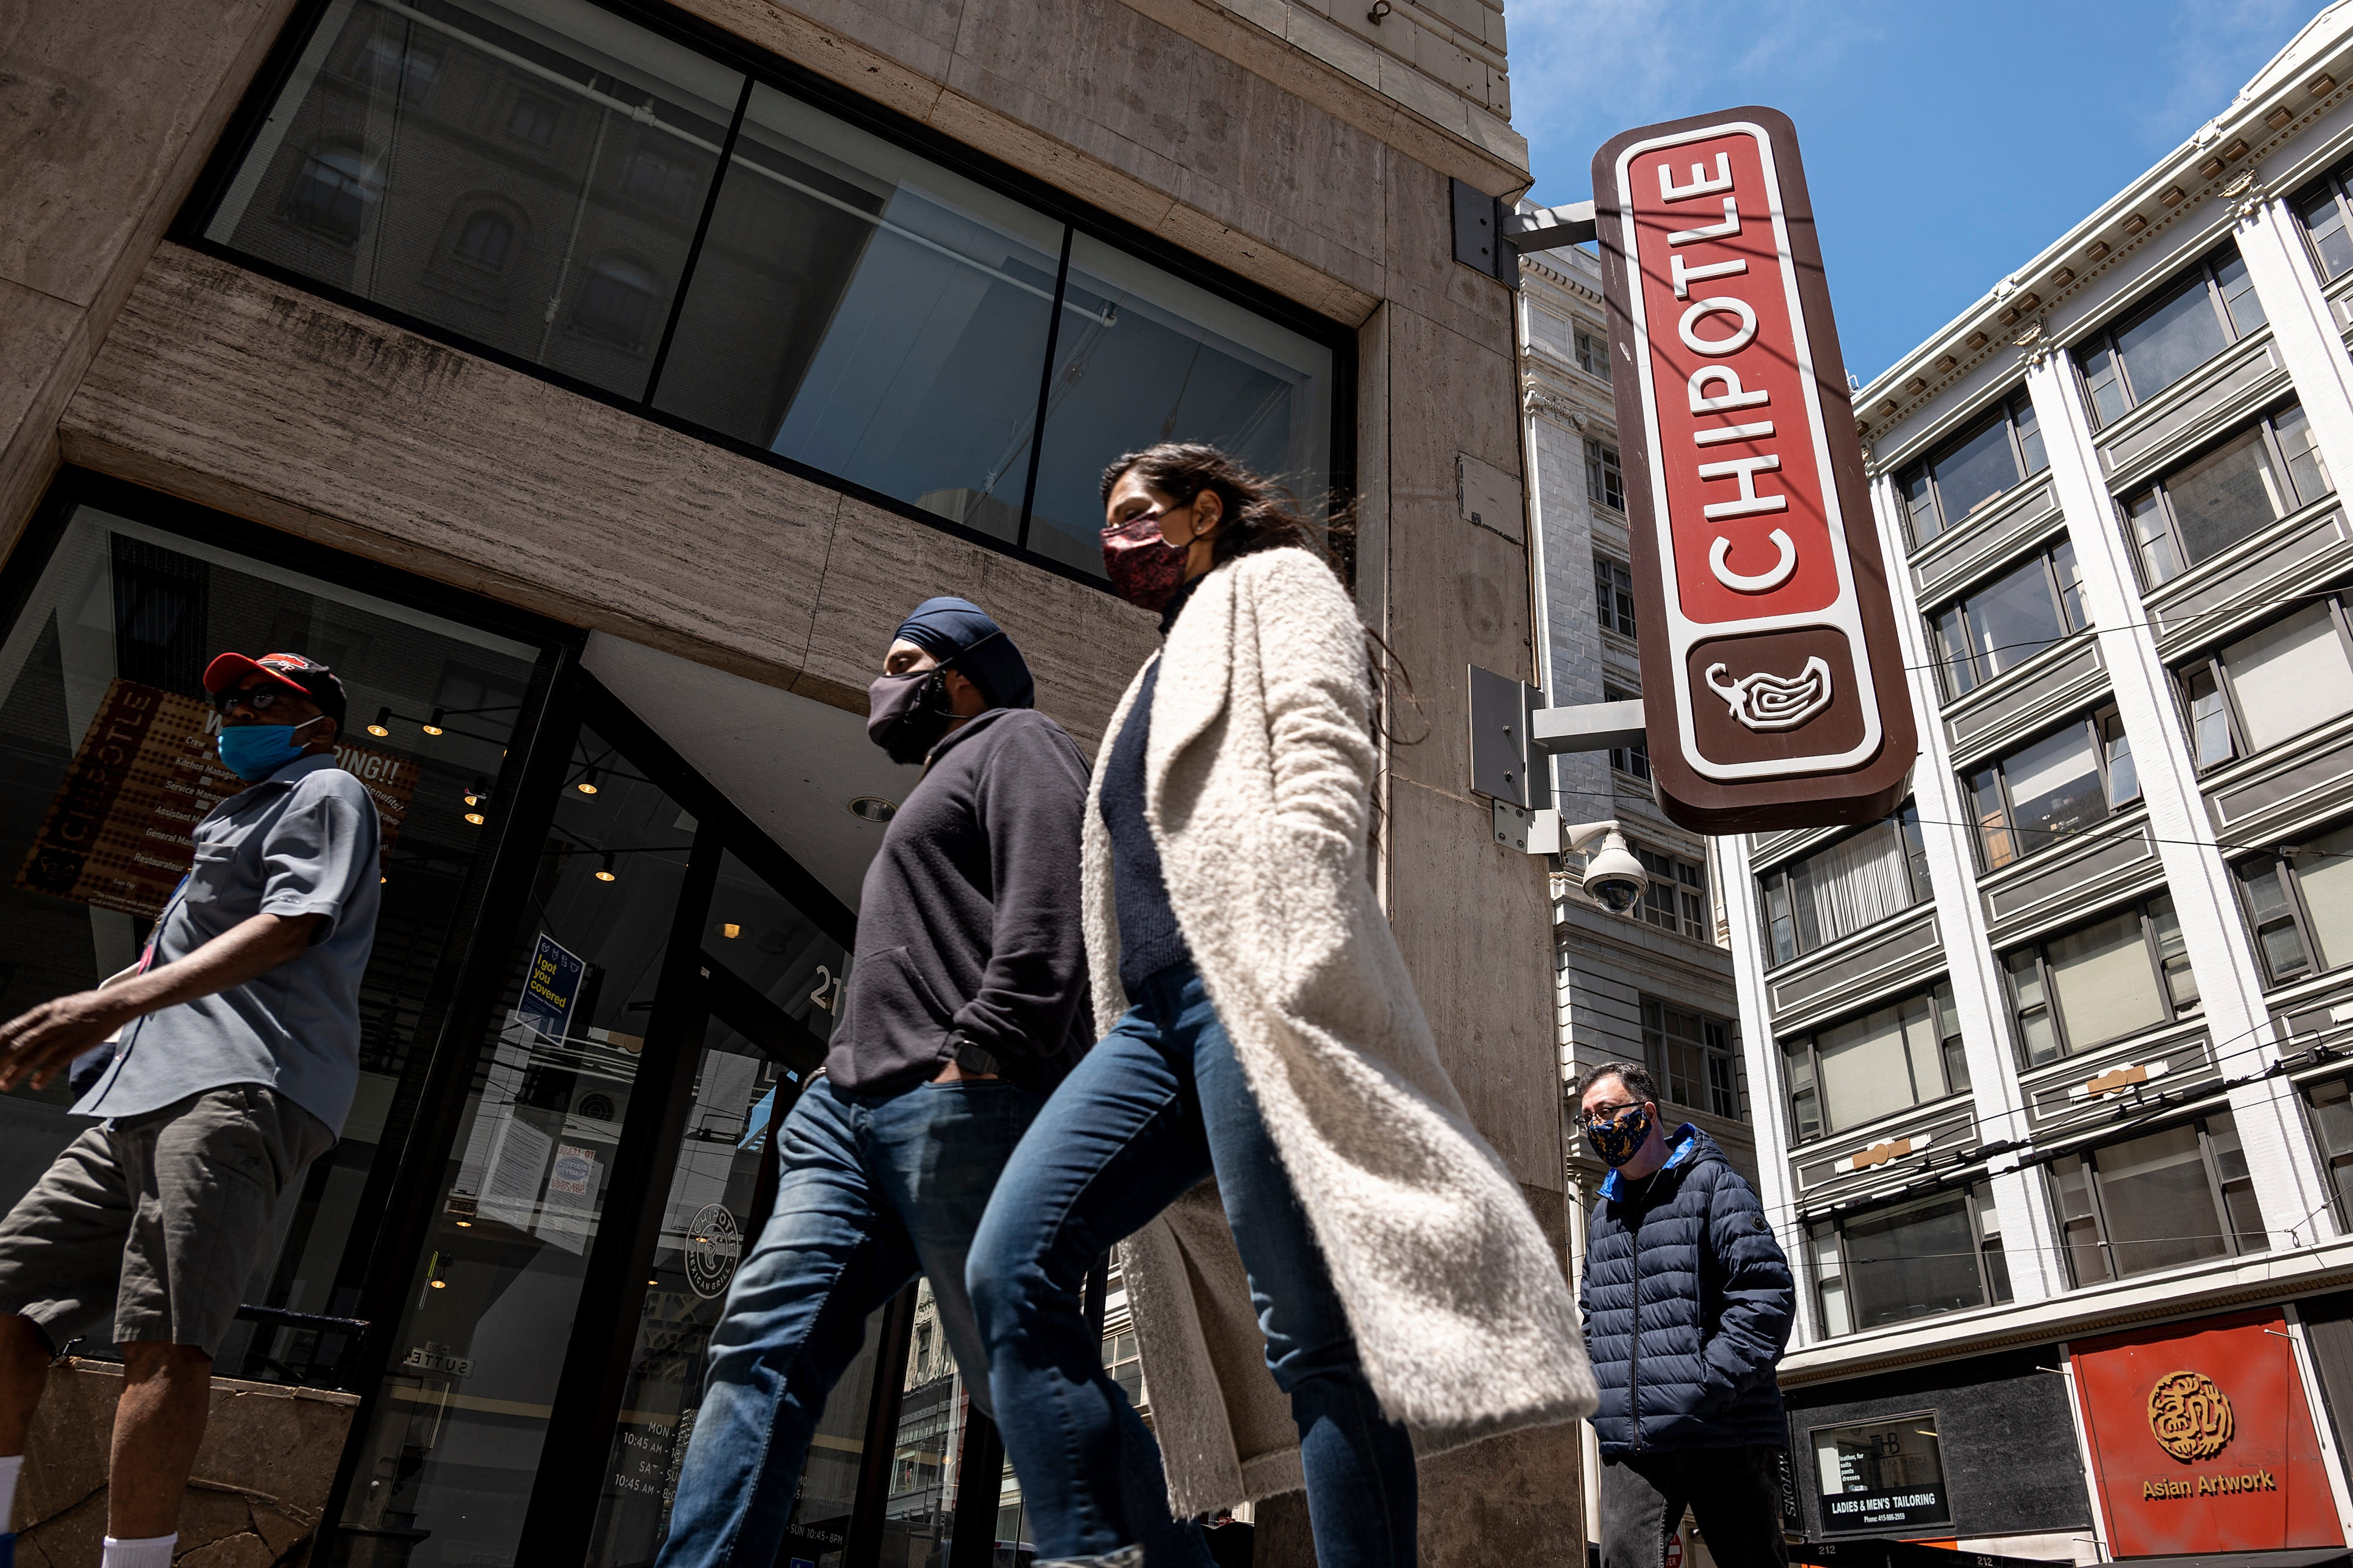 Chipotle tweaks its loyalty program to offer more redemption options - CNBC